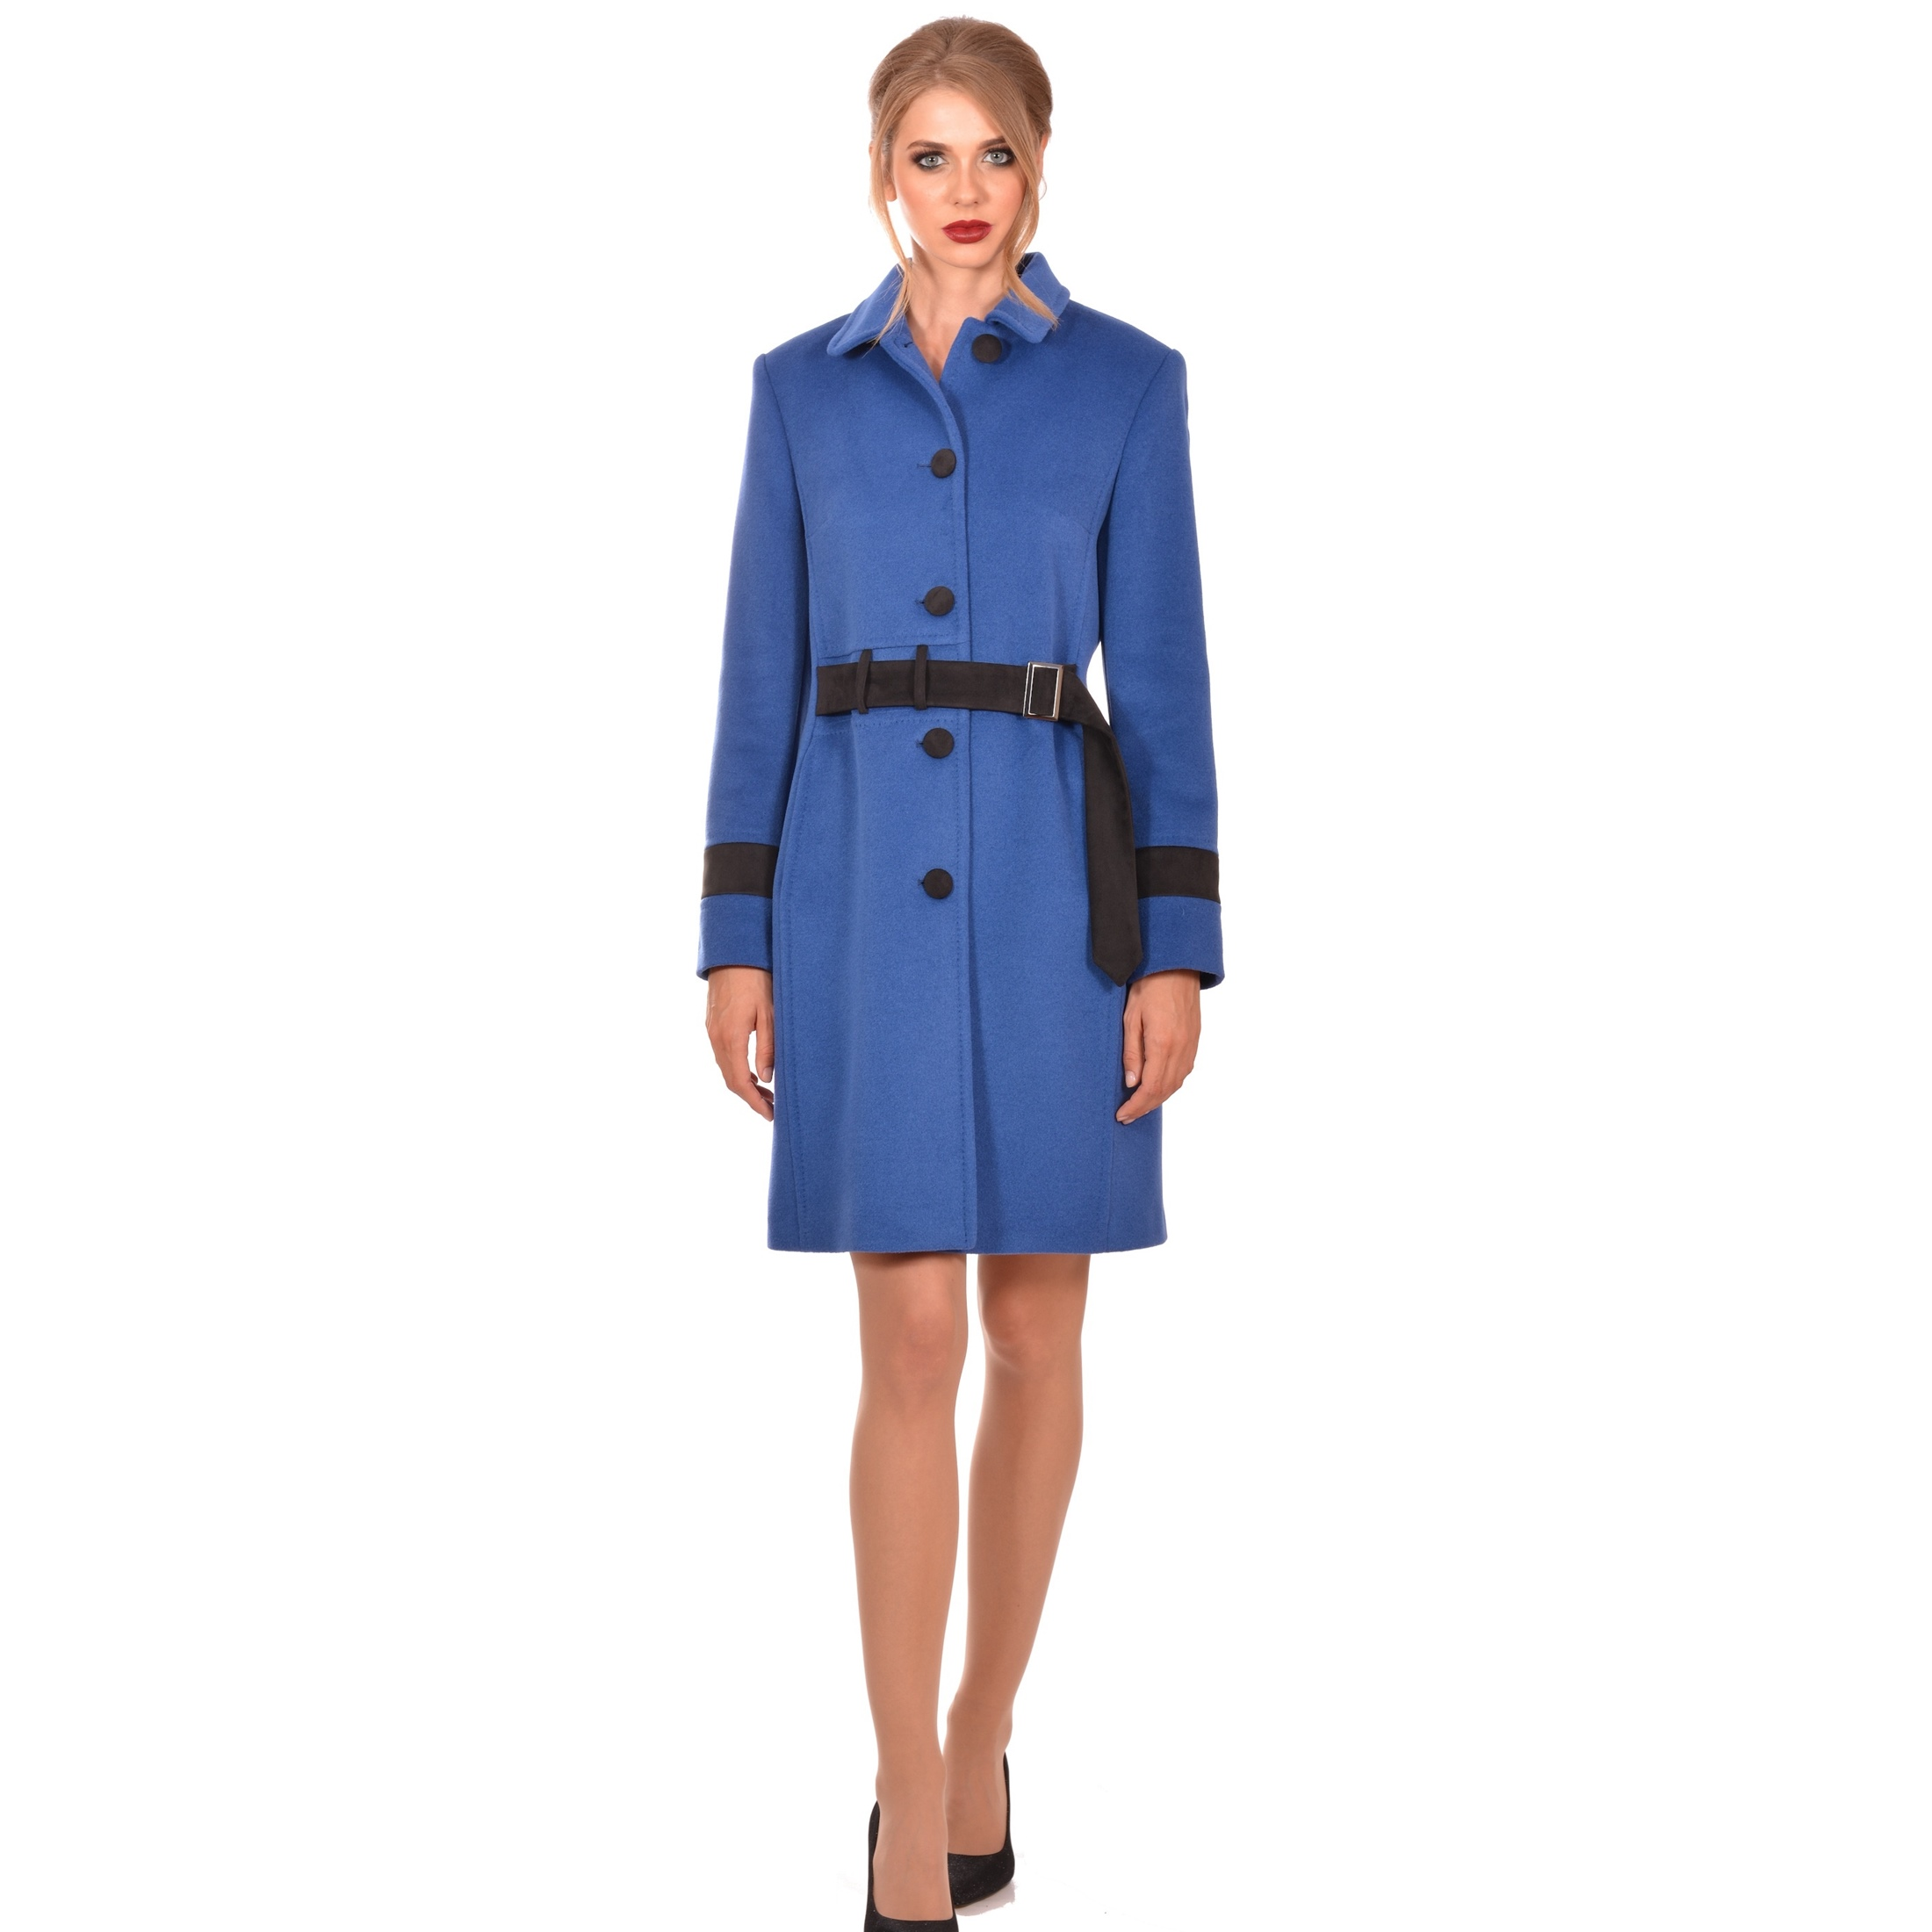 Picture of Women's Elegant Coat LADY M - LM40921